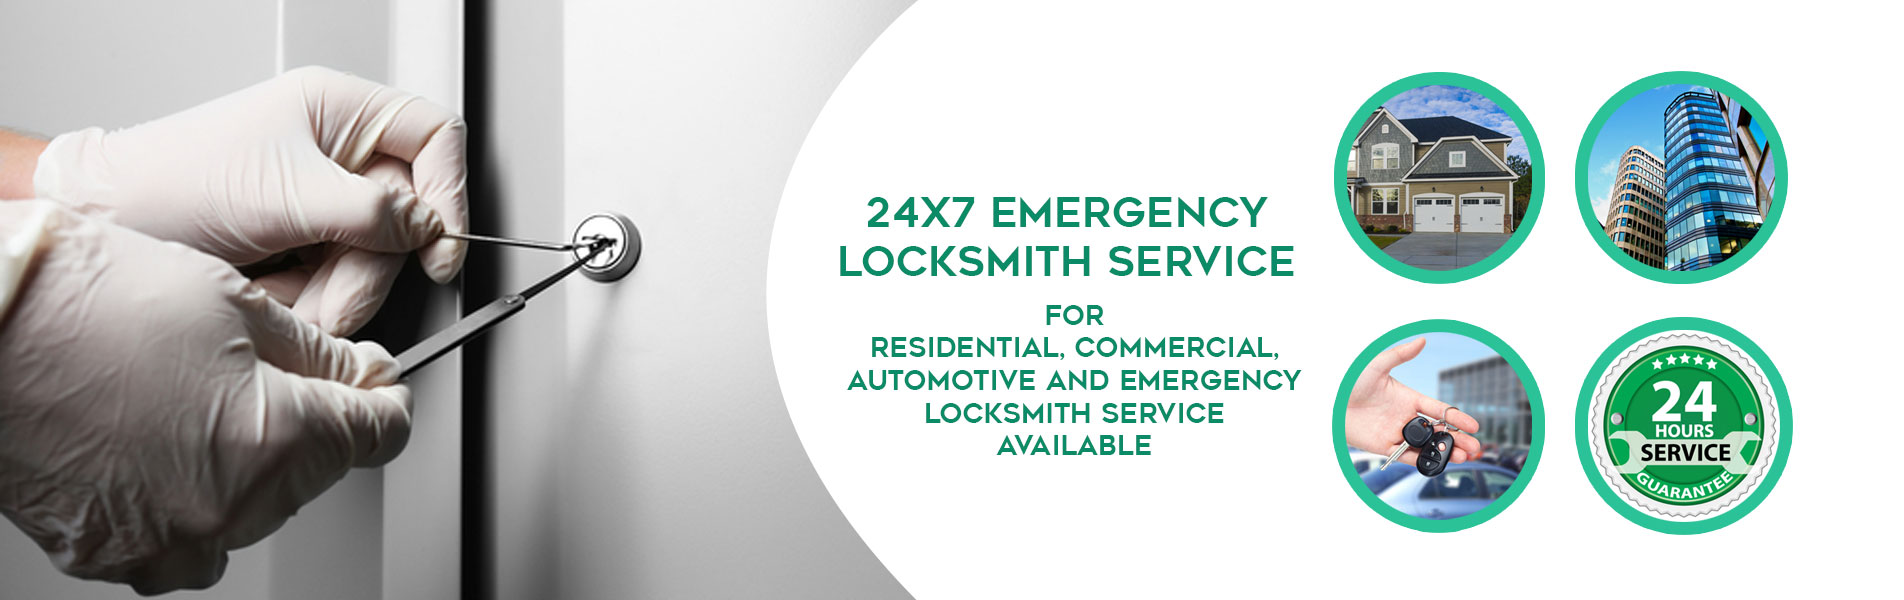 Blackwood Locksmith Store Blackwood, NJ 856-454-9521